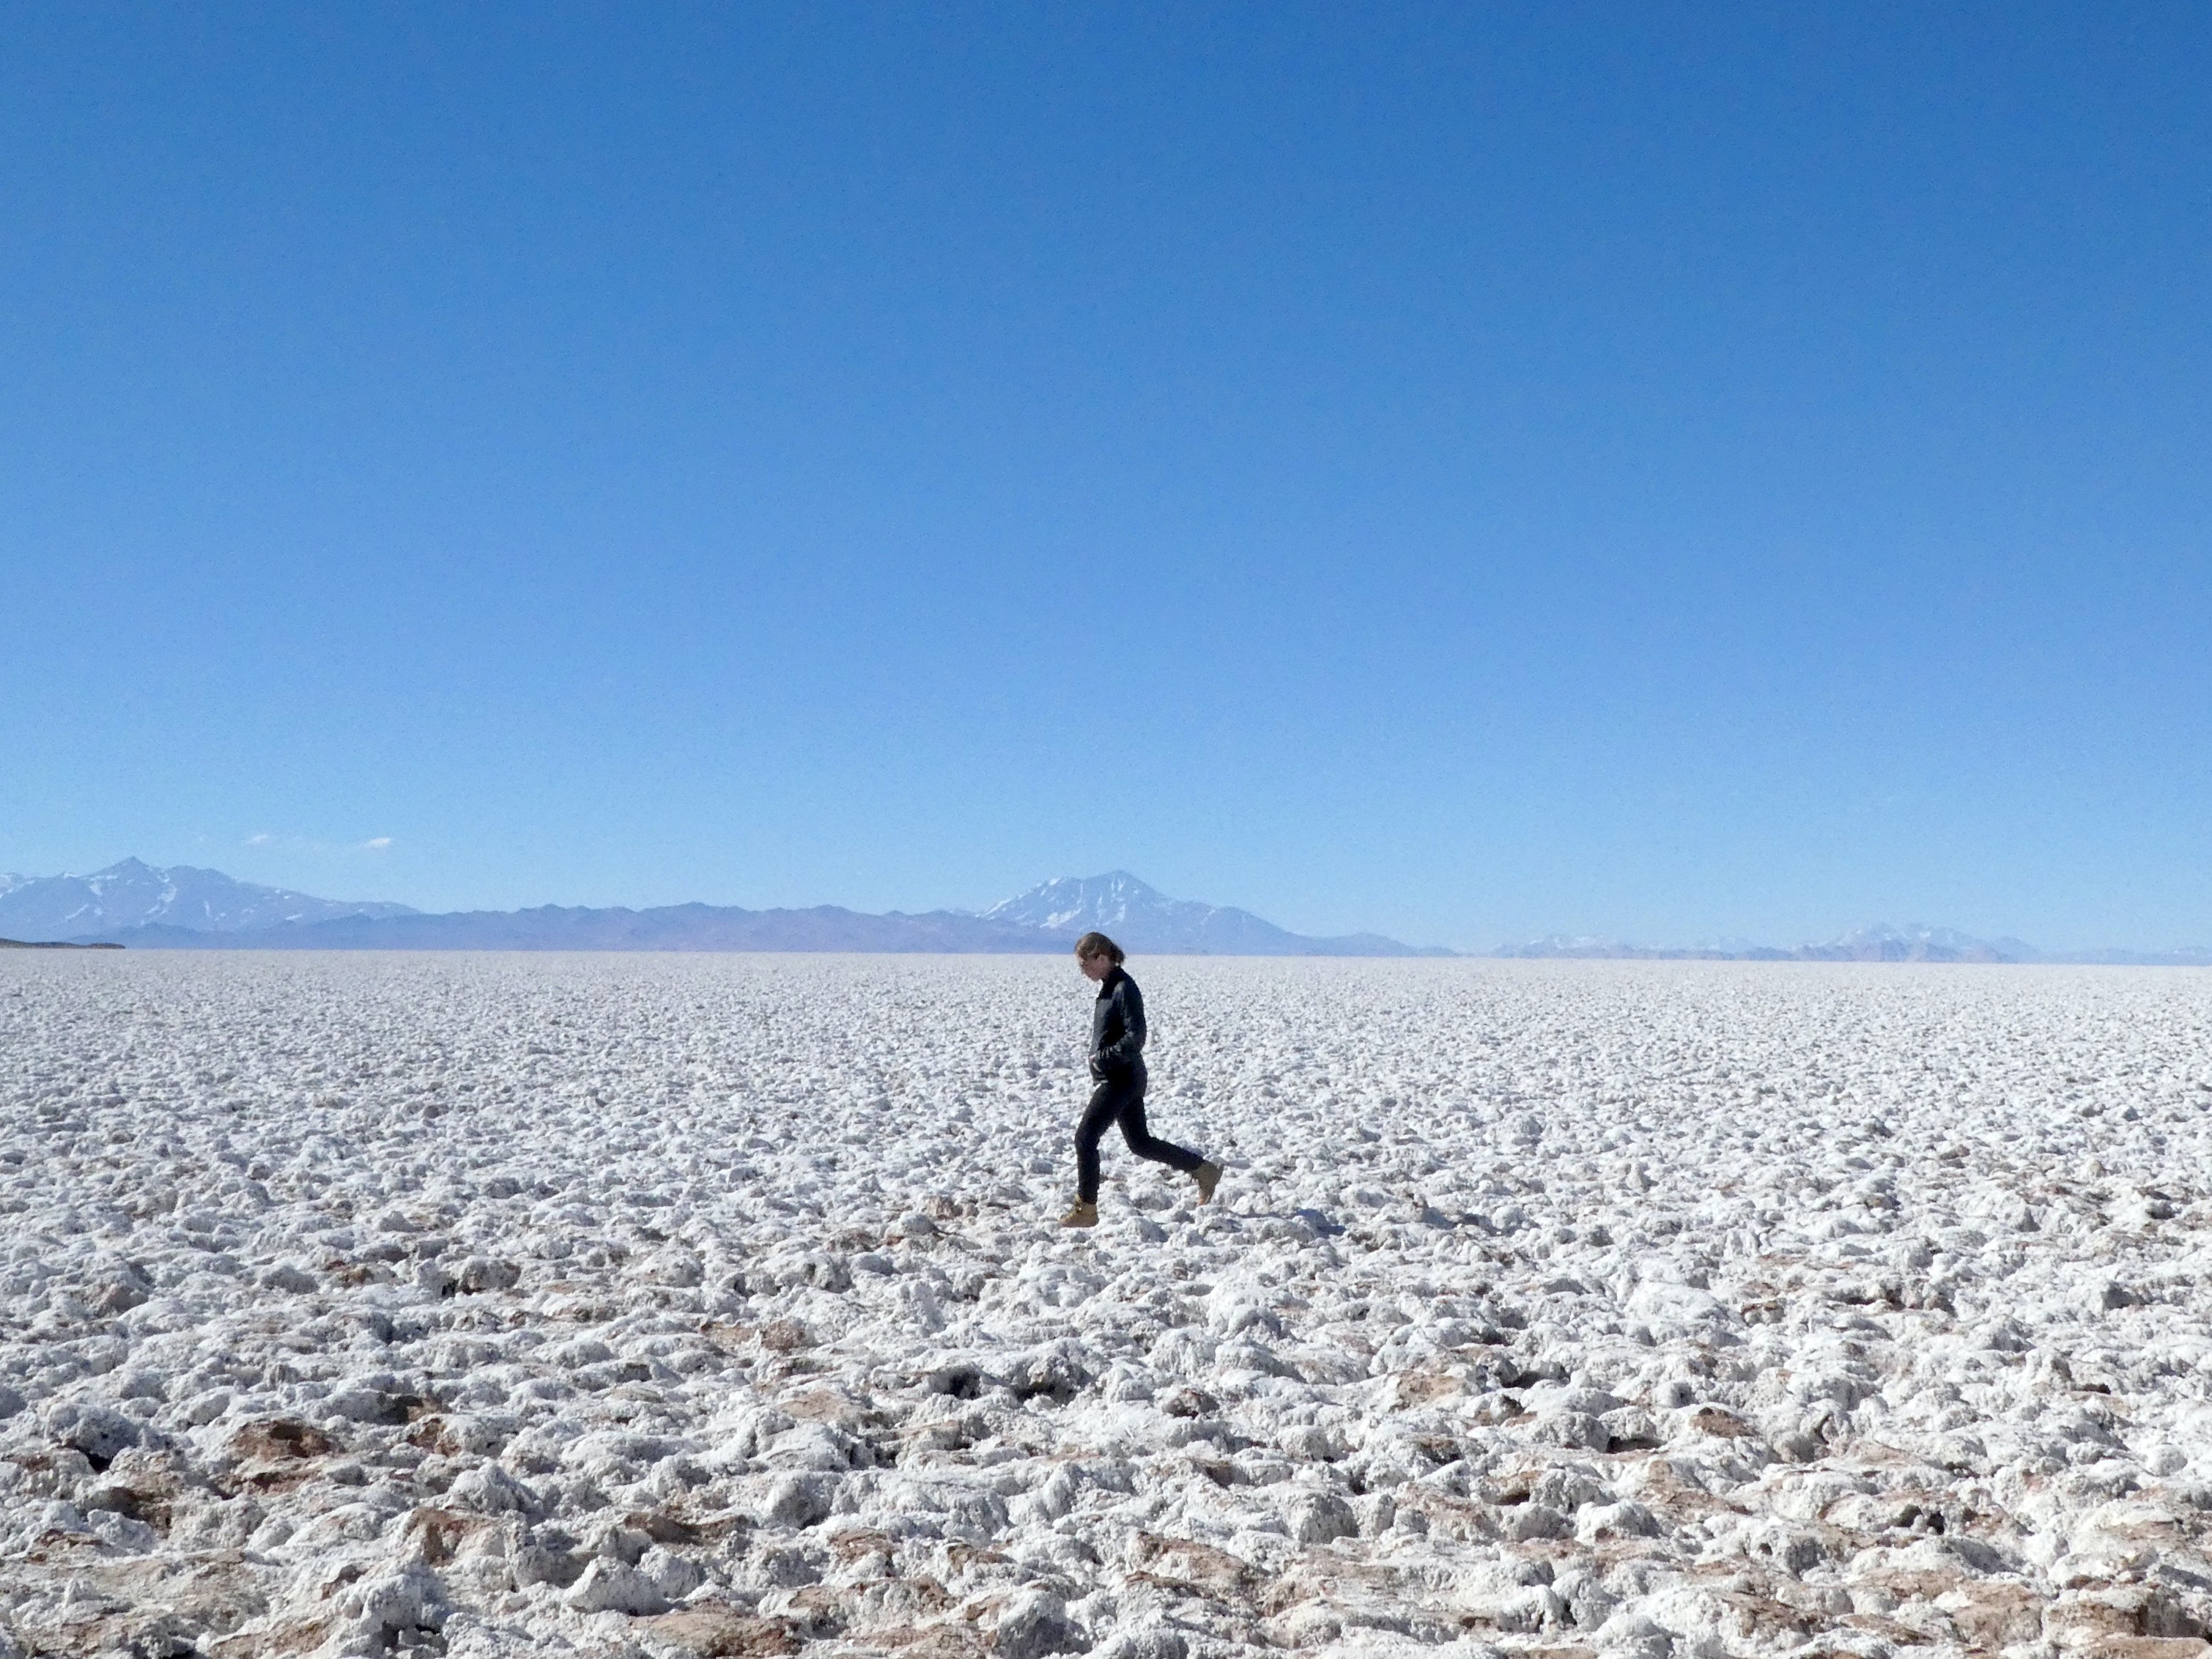 The popcorn-esque surface of the Salar de Arizaro, the biggest salt flat in the area.